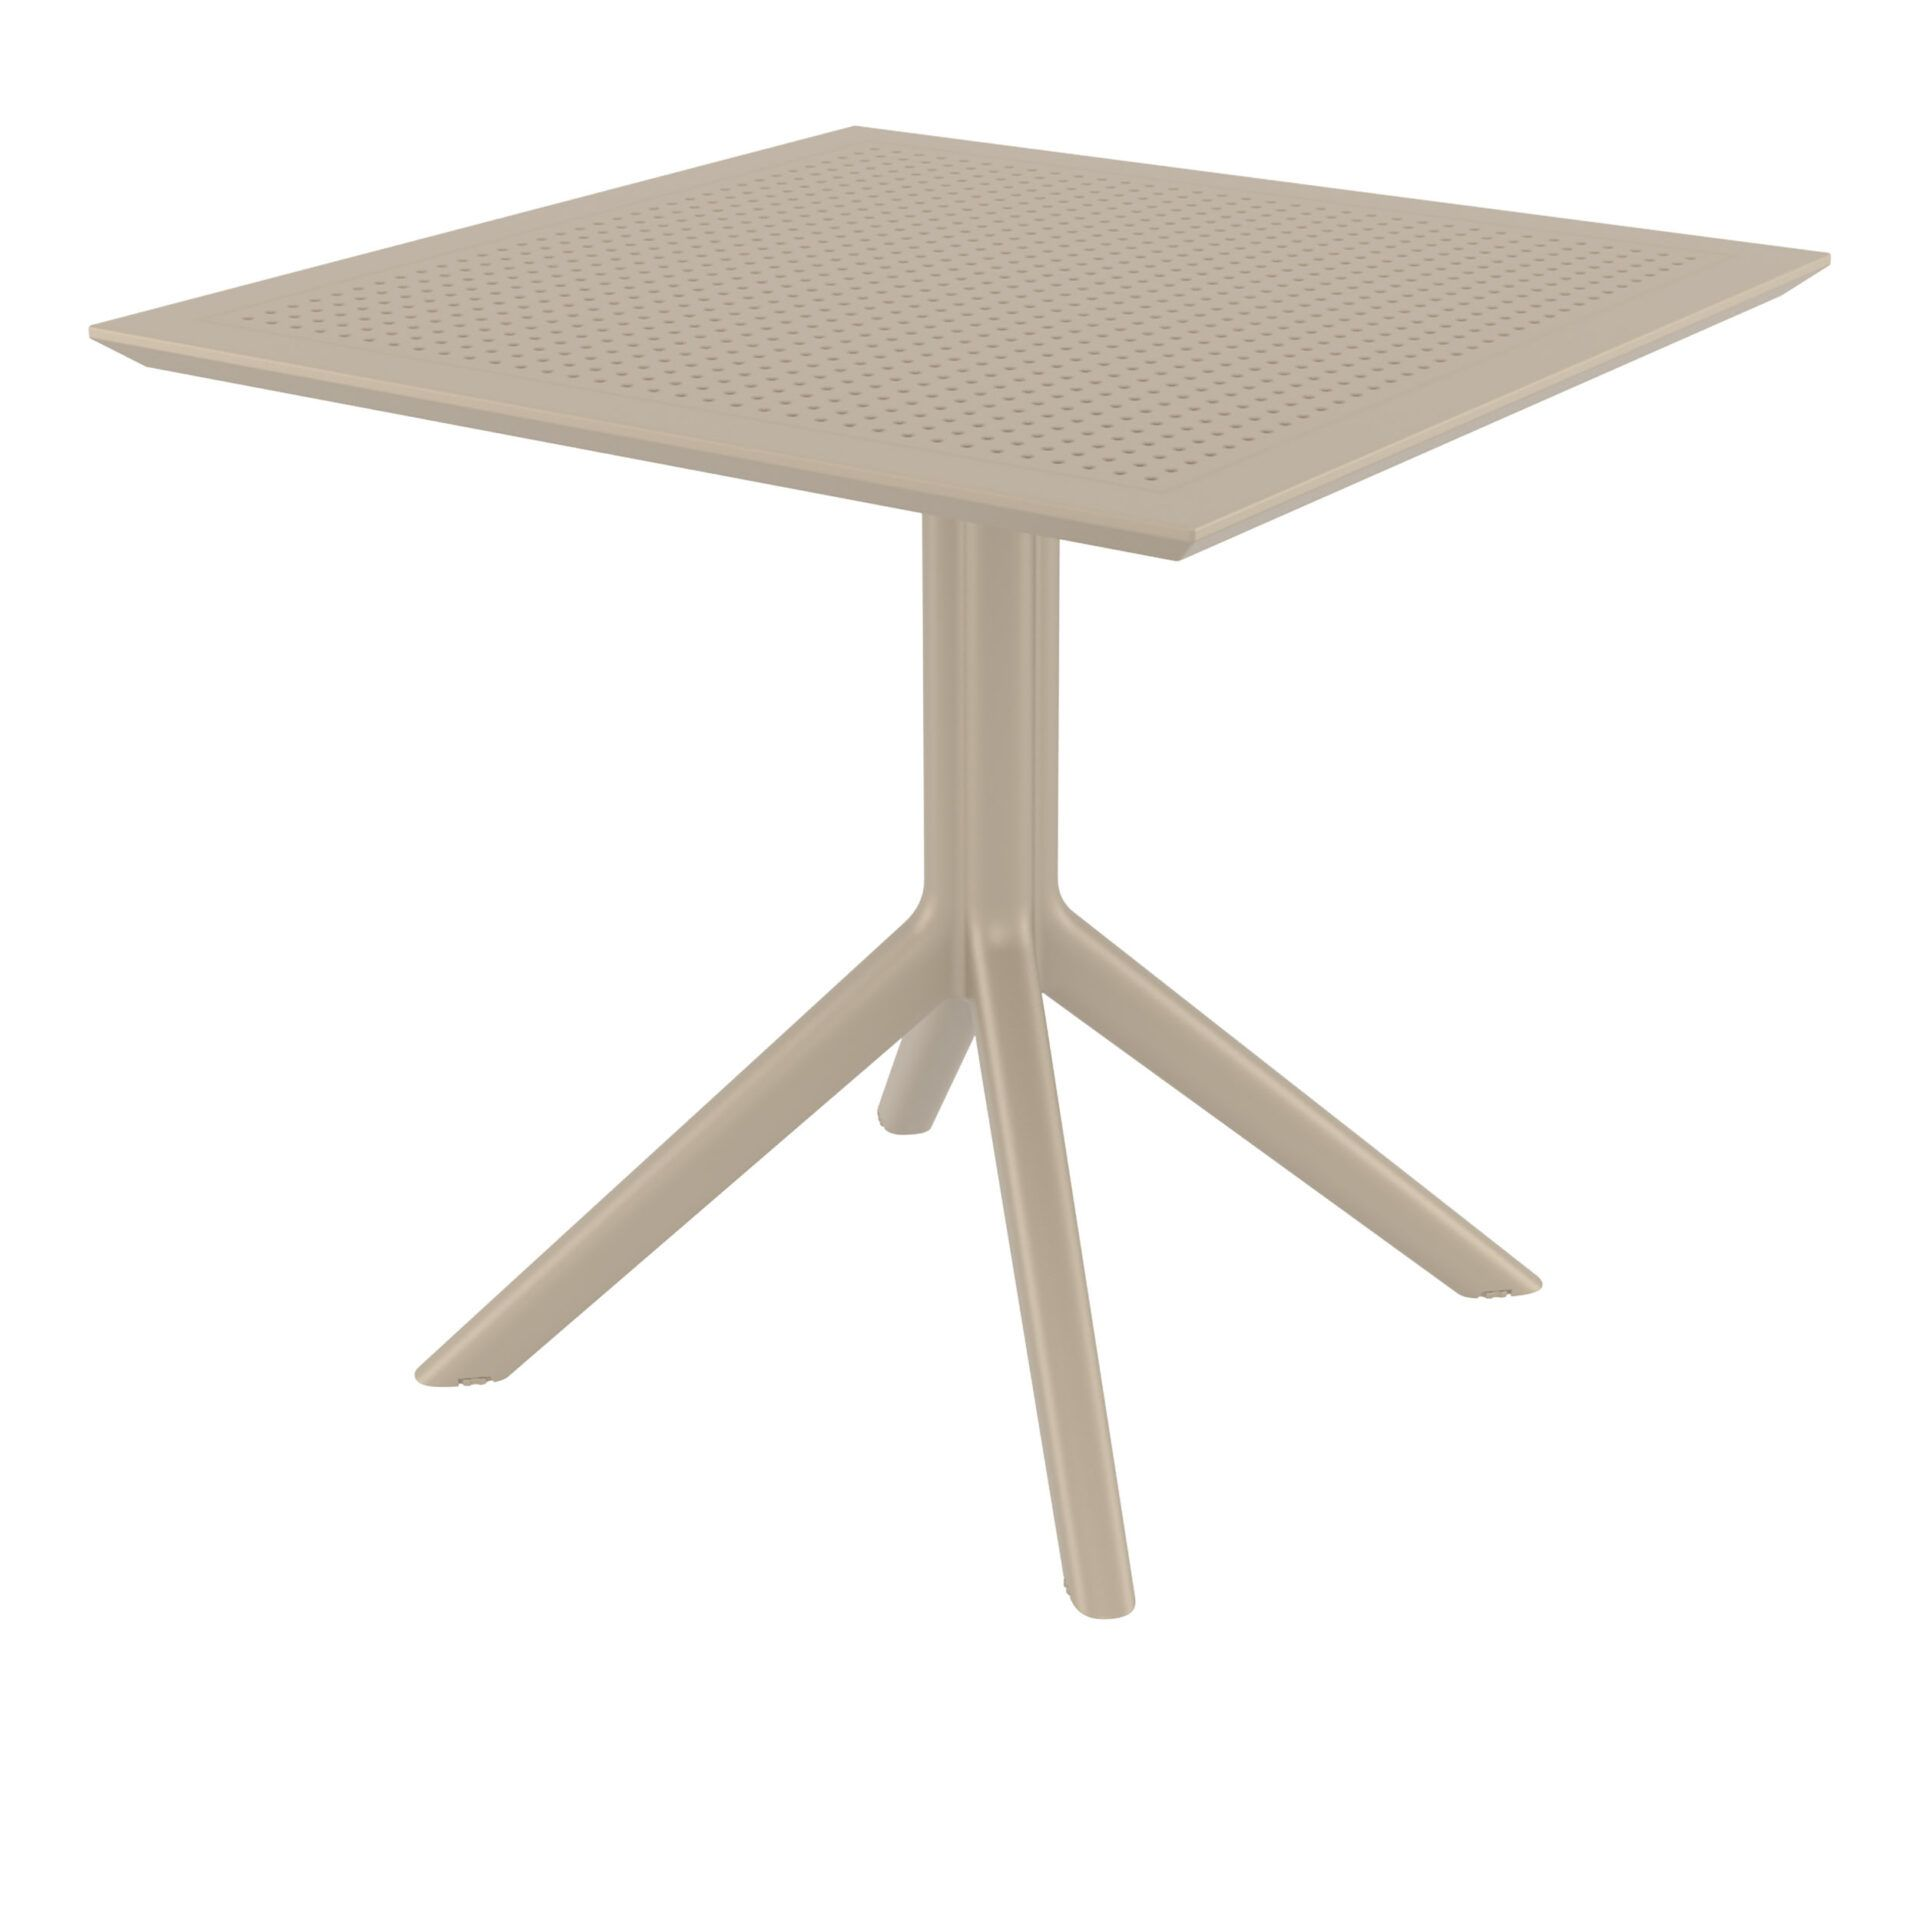 polypropylene outdoor cafe sky table 80 taupe front side